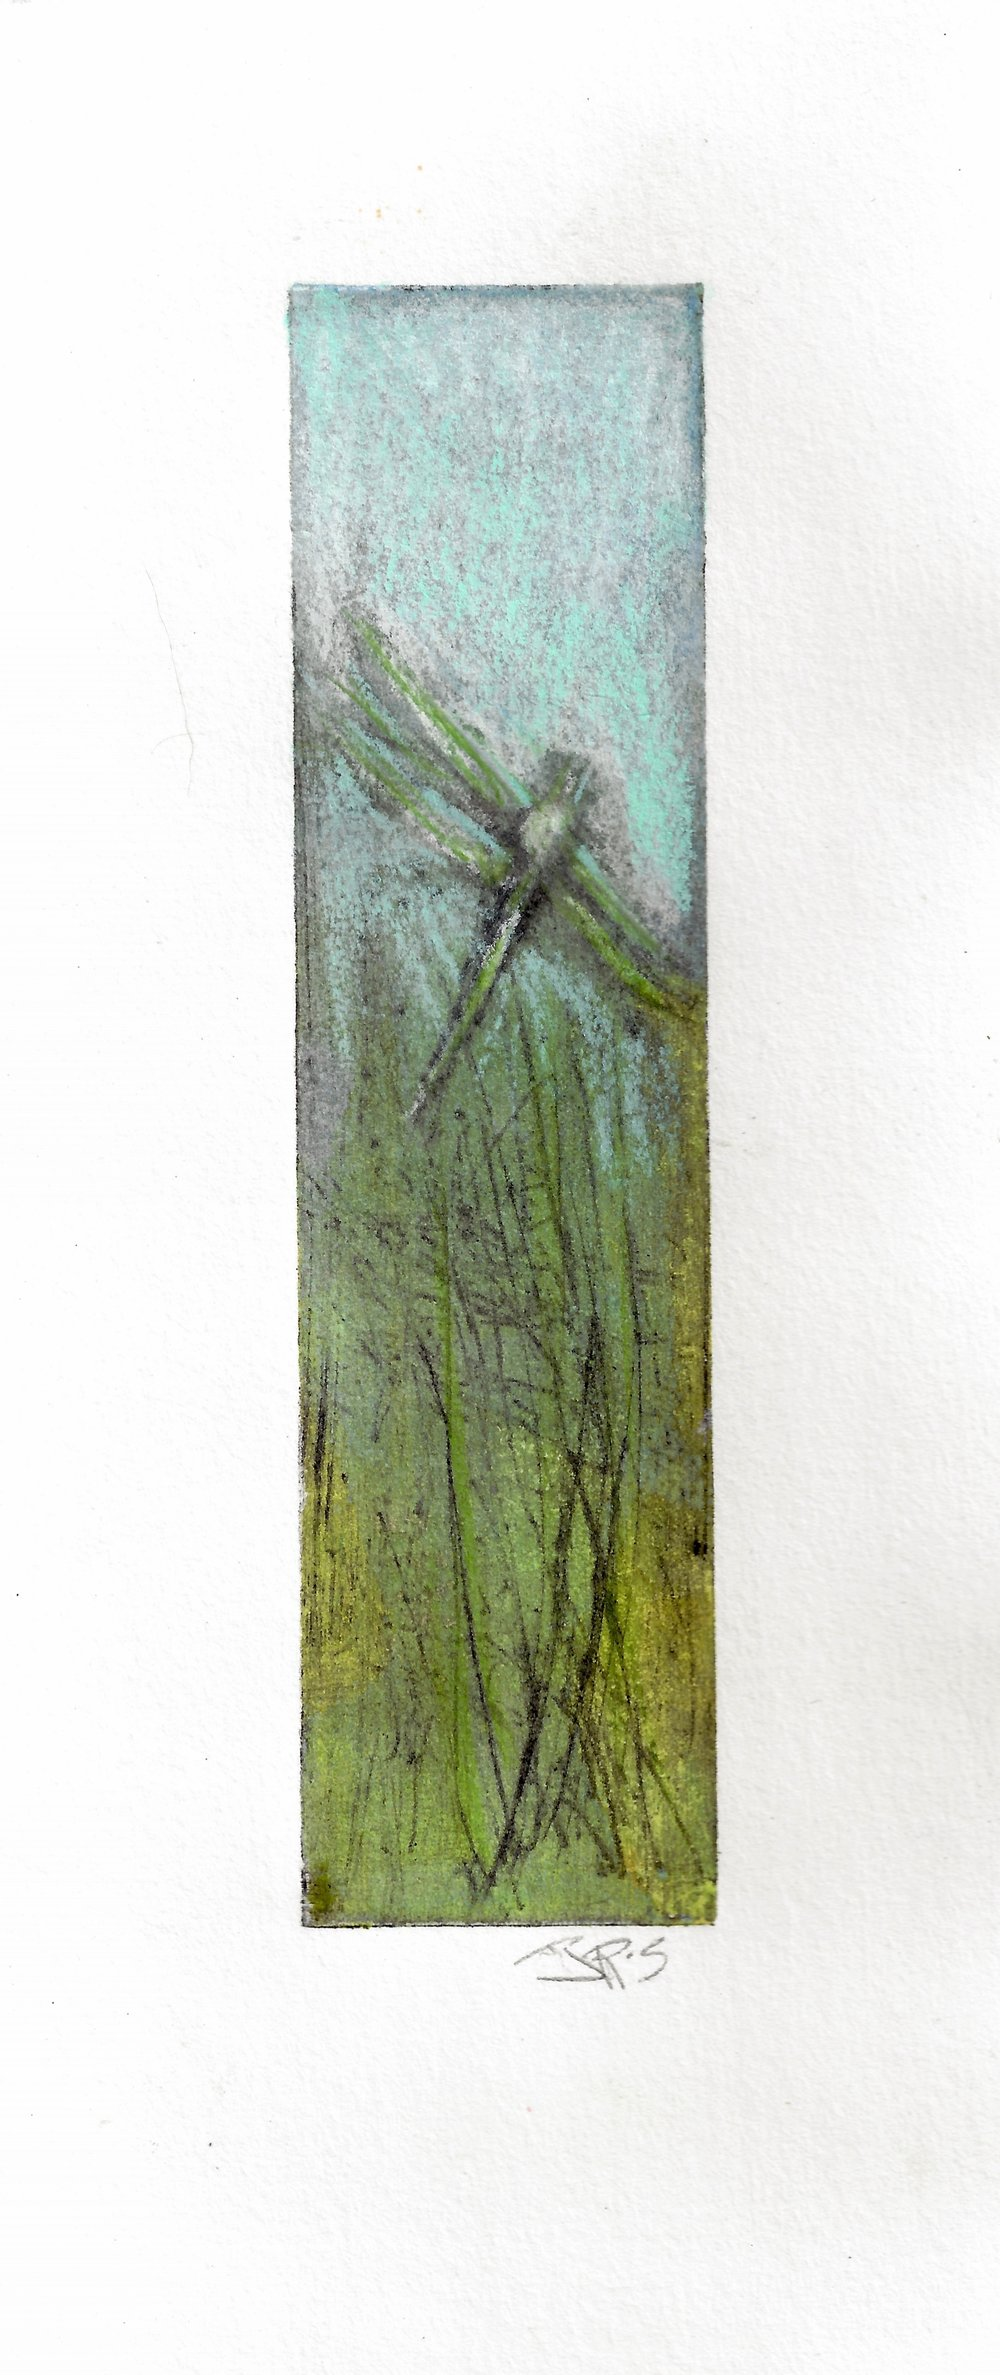 Dragonfly Love - 1/10 Limited Variable Edition